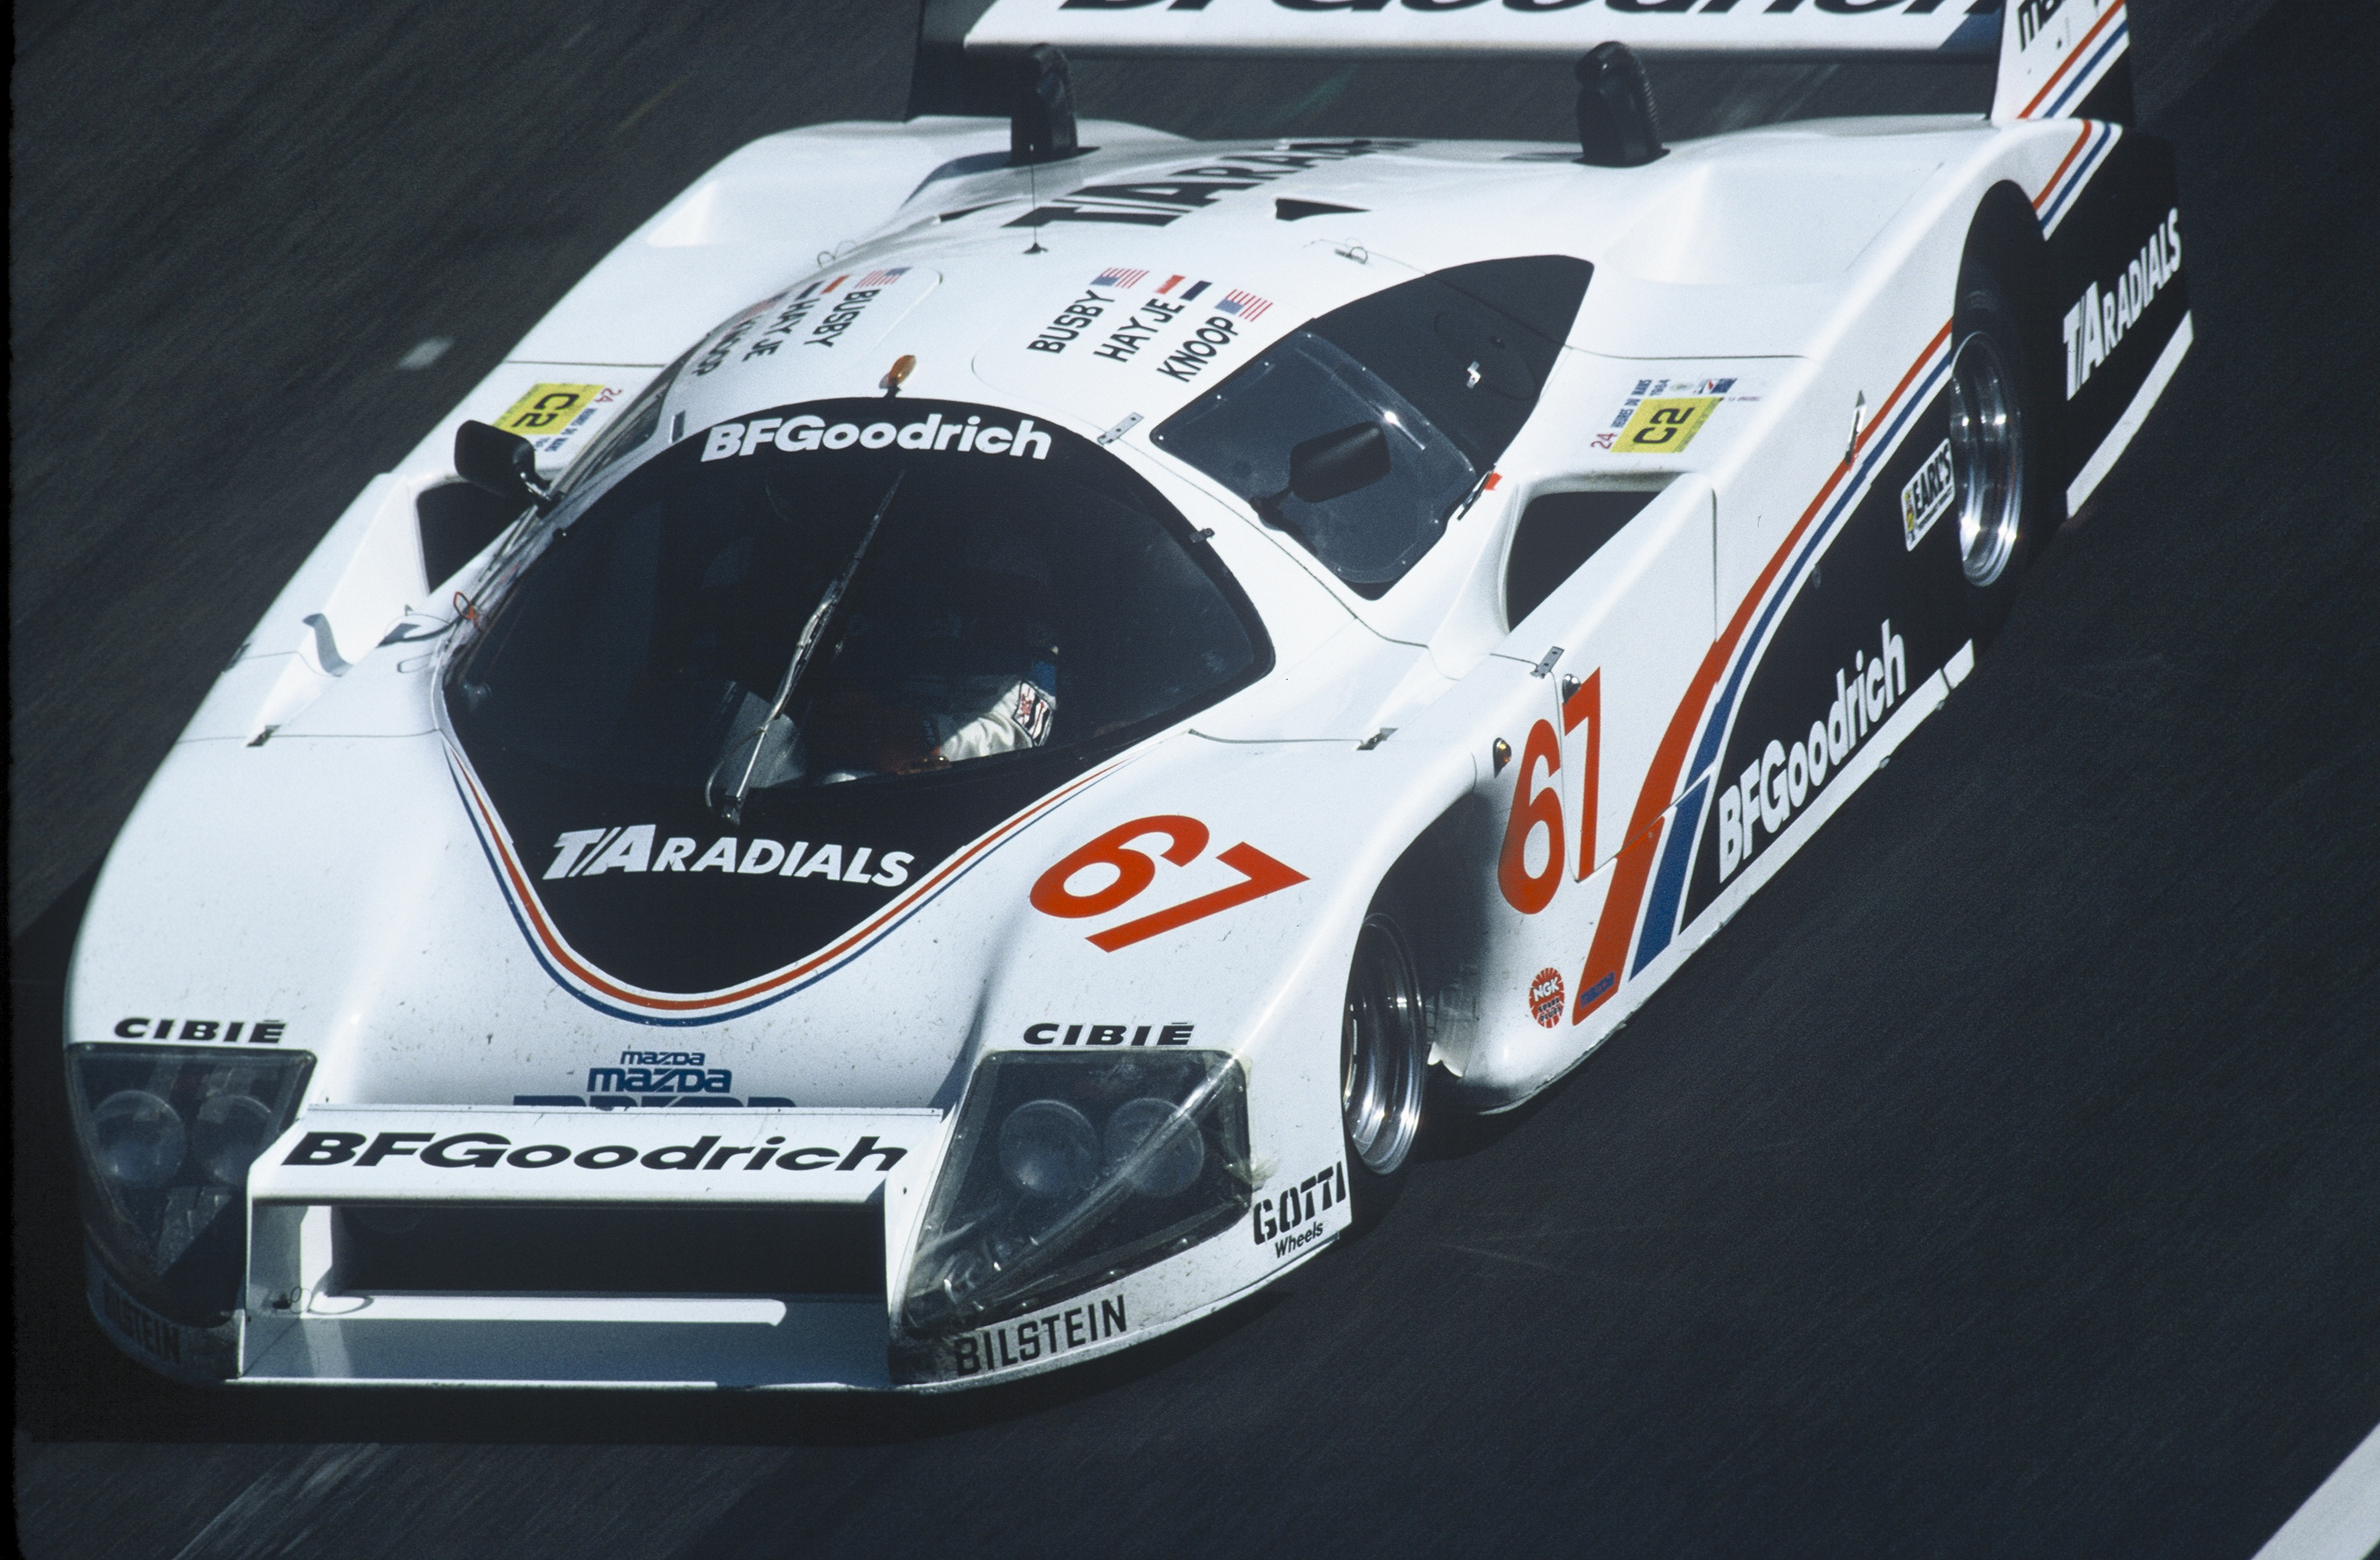 1984 Le Mans  Group C2 victory for the BFGoodrich Lola ...